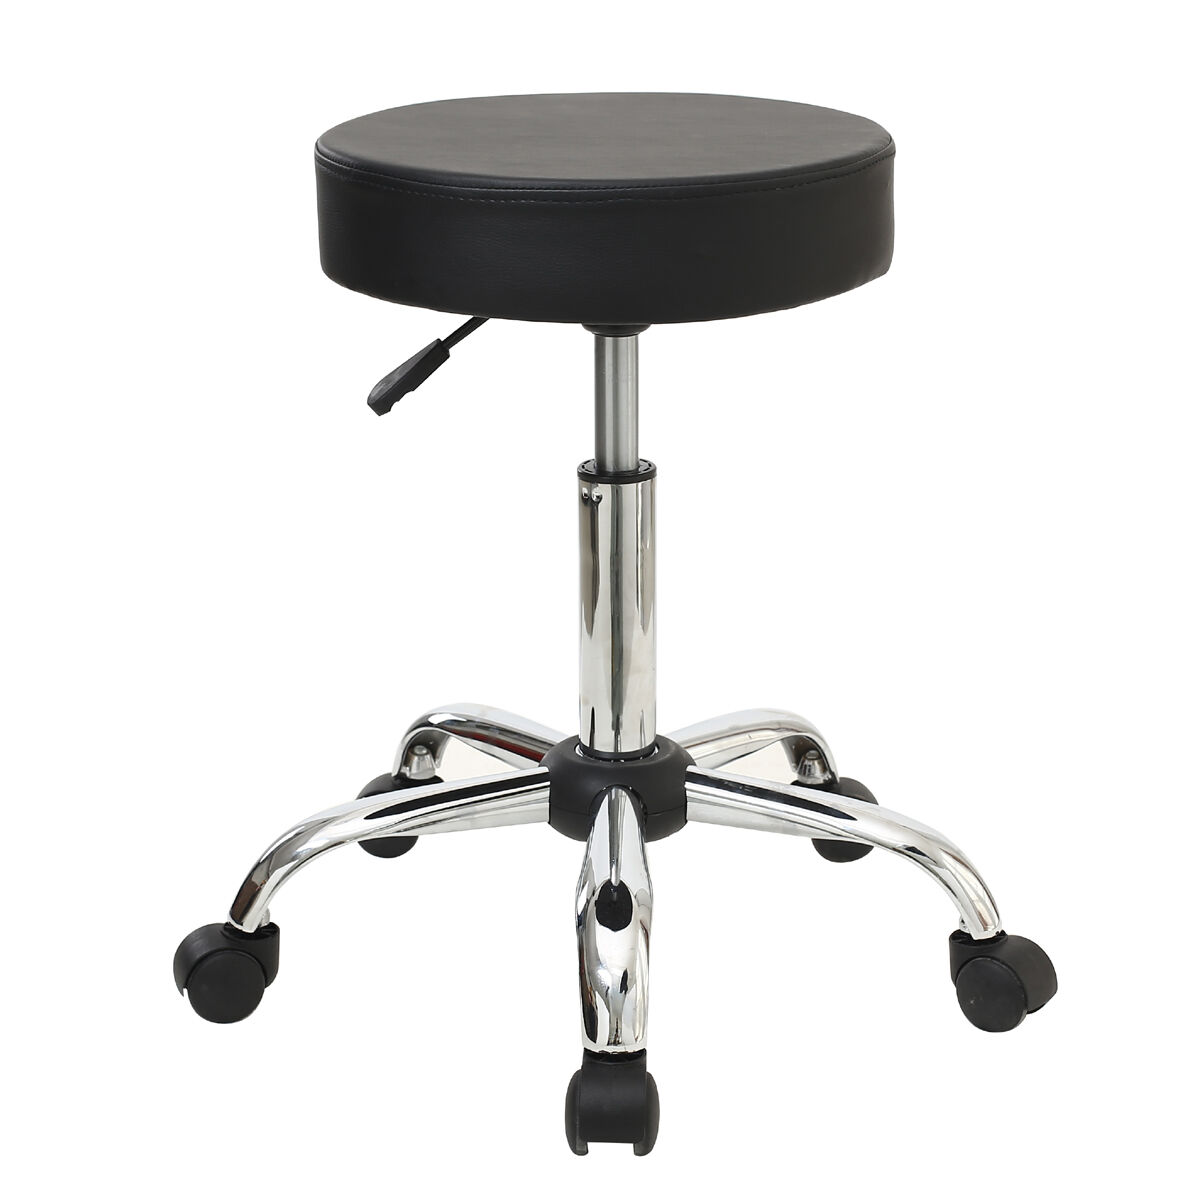 Pneumatic Rolling Adjustable Swivel Bar Stool Drafting